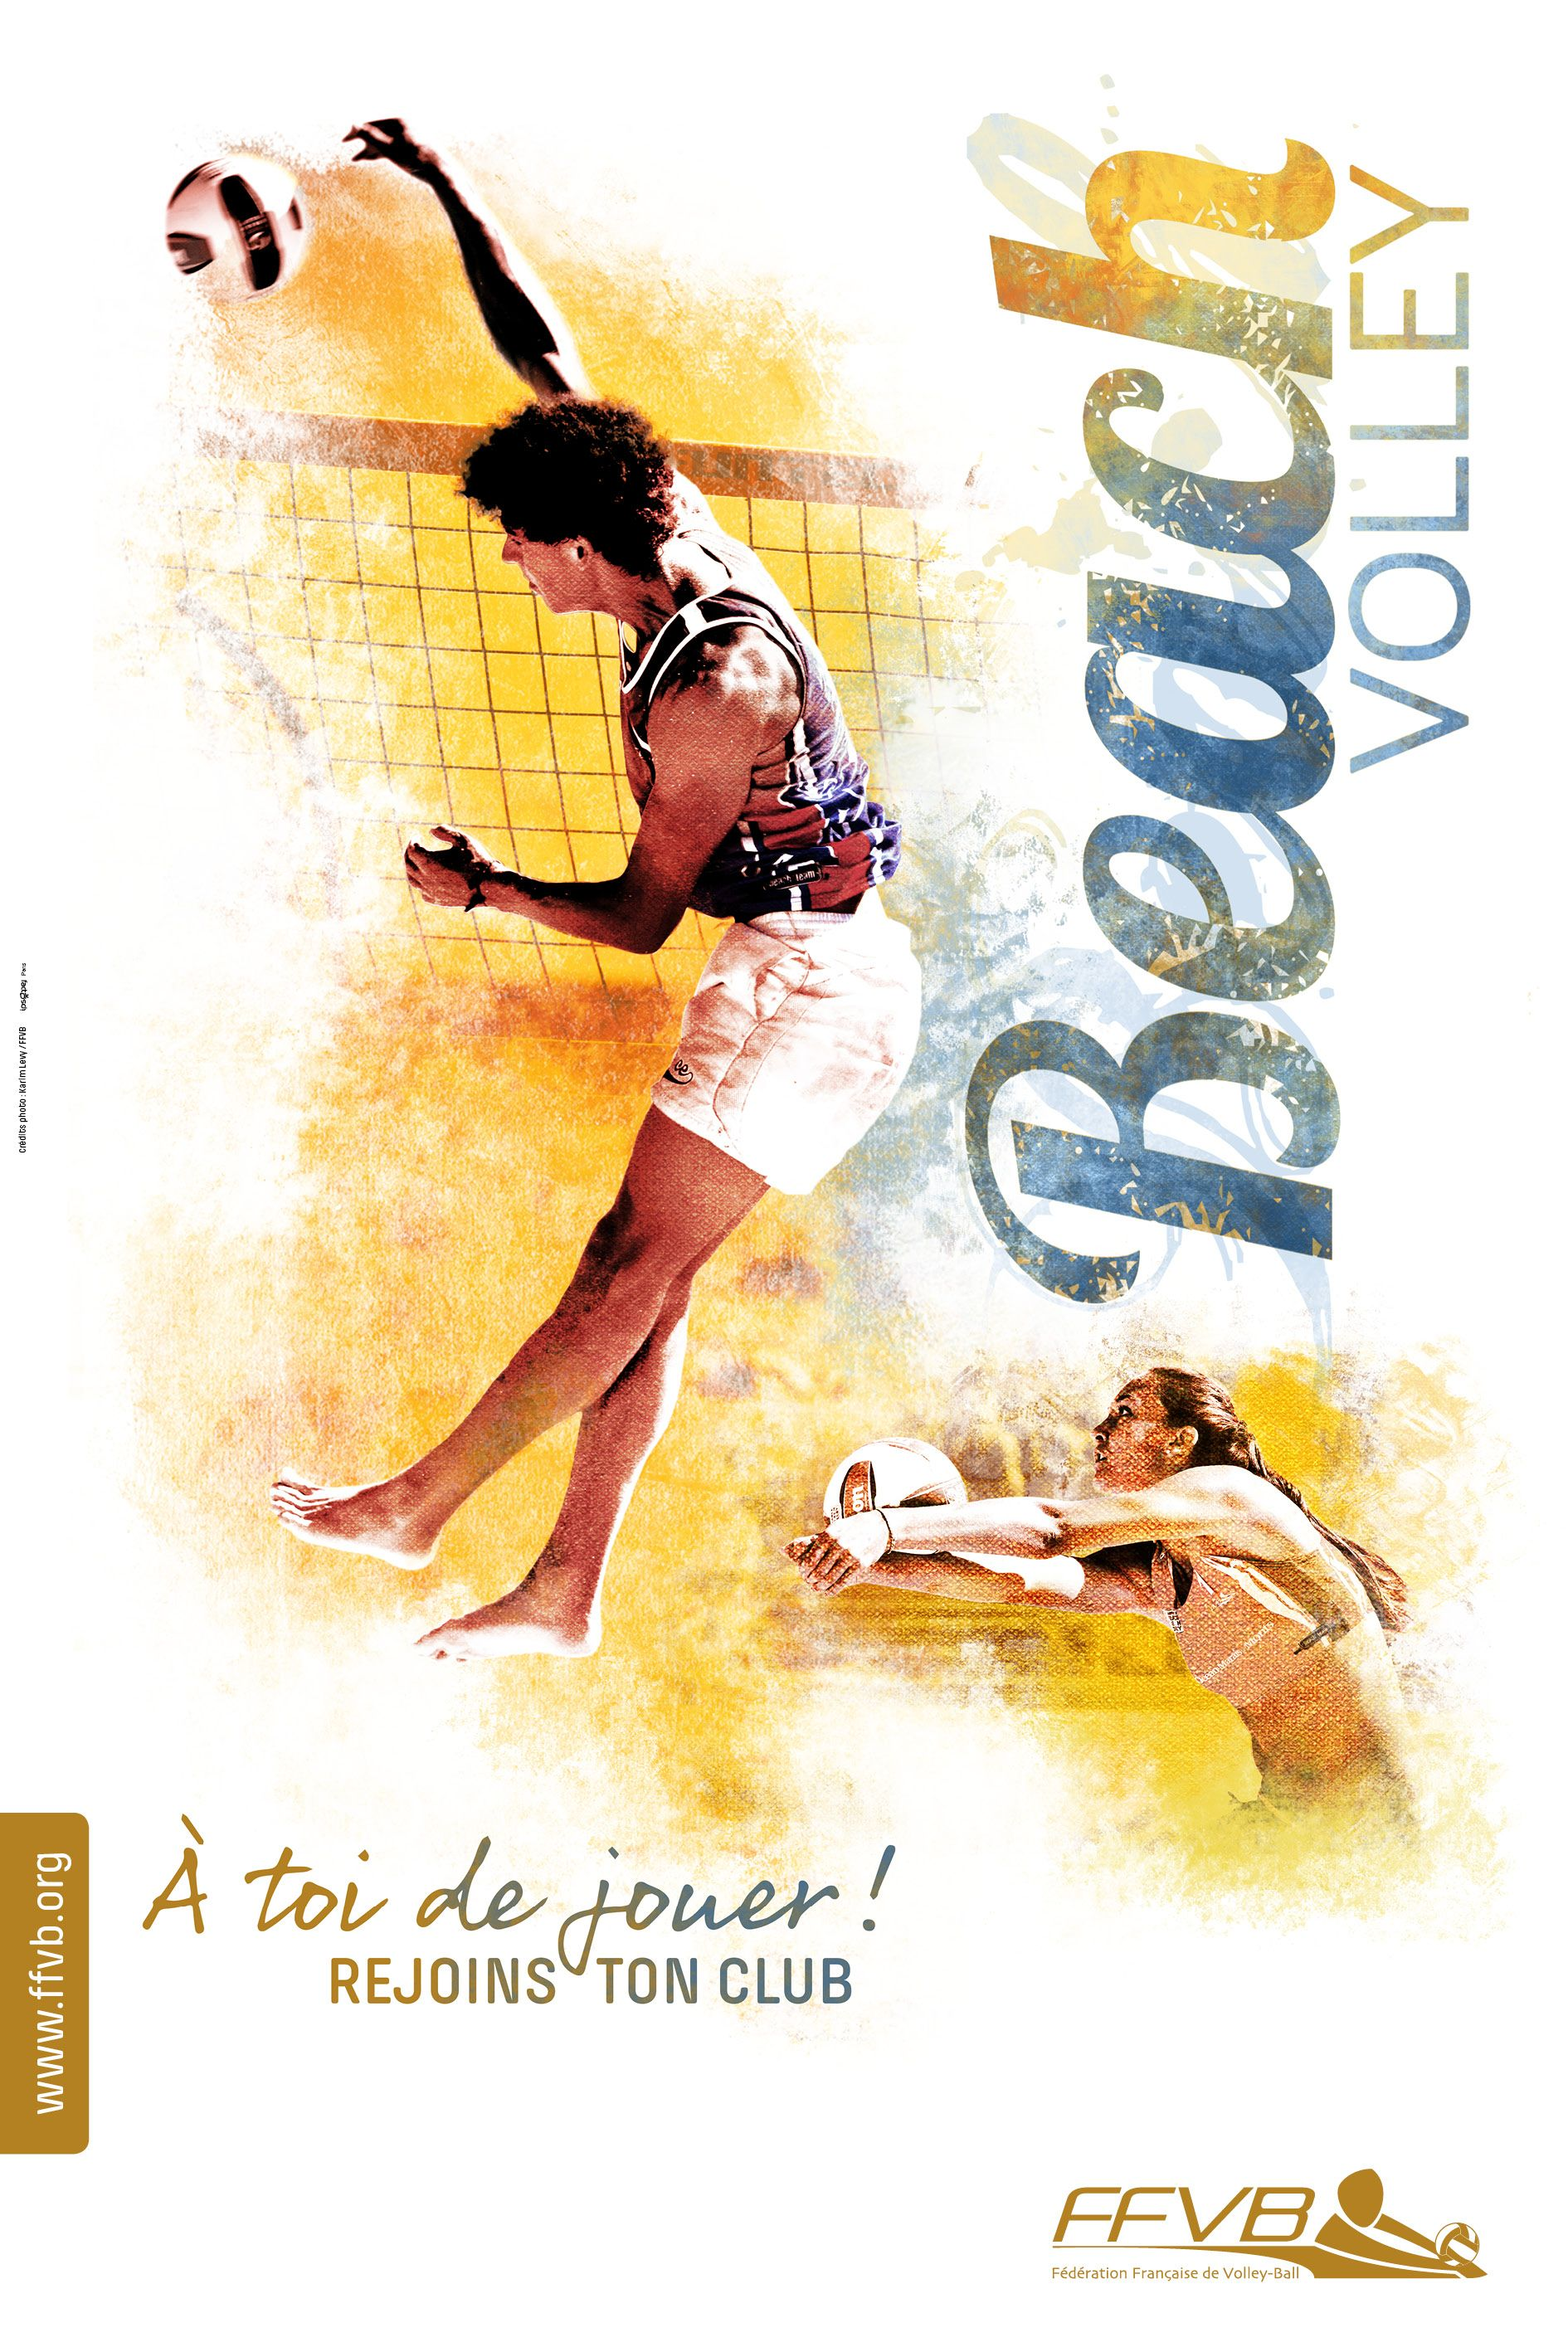 affiche rentr u00e9e des clubs volleyball beachvolley ffvb